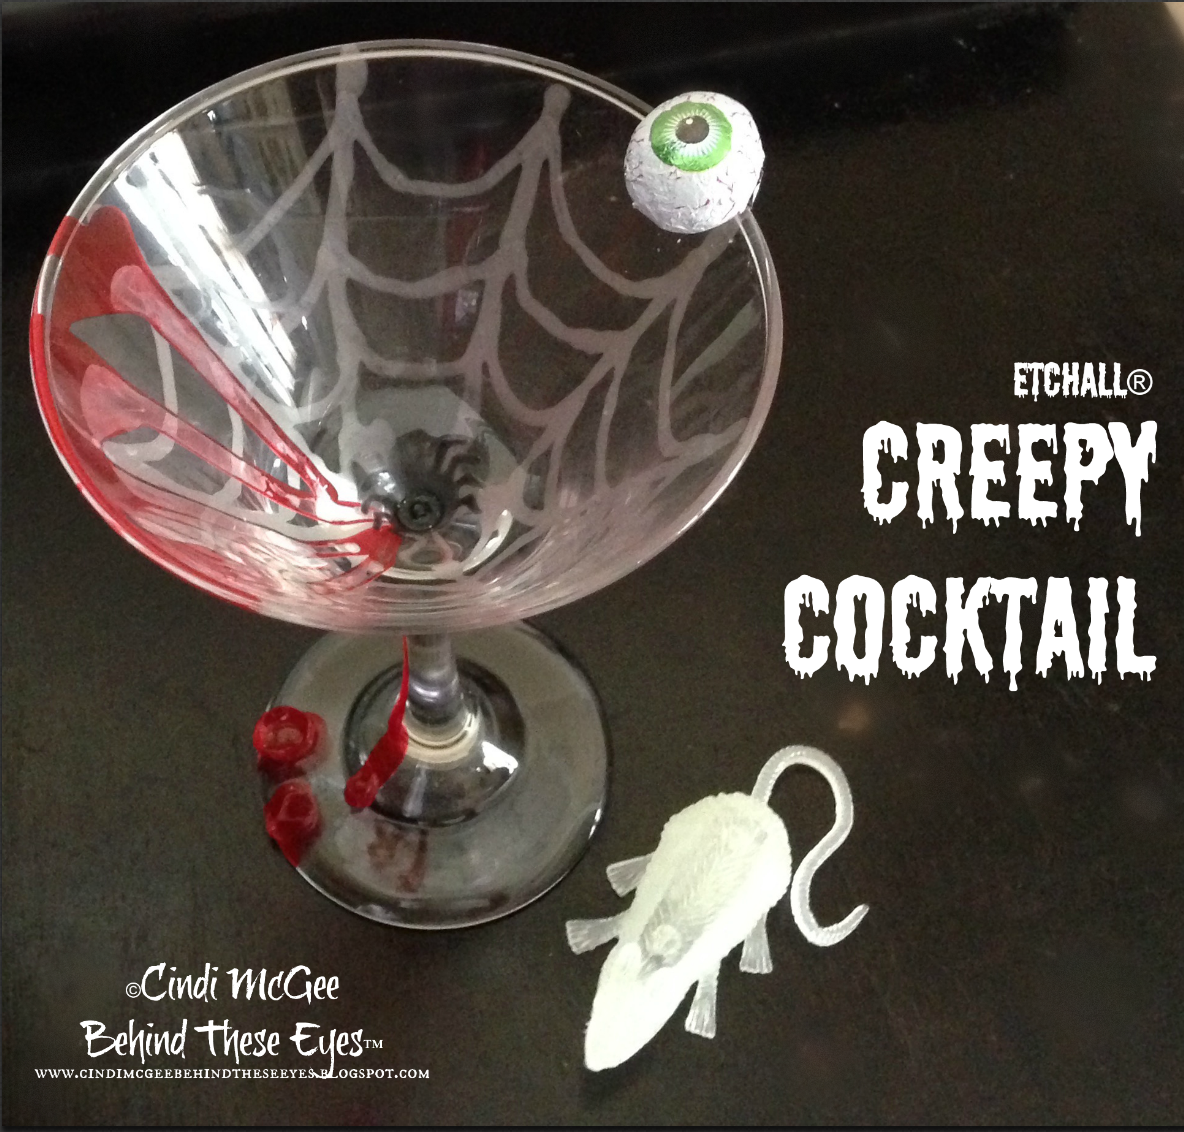 Time for a Creepy Cocktail!